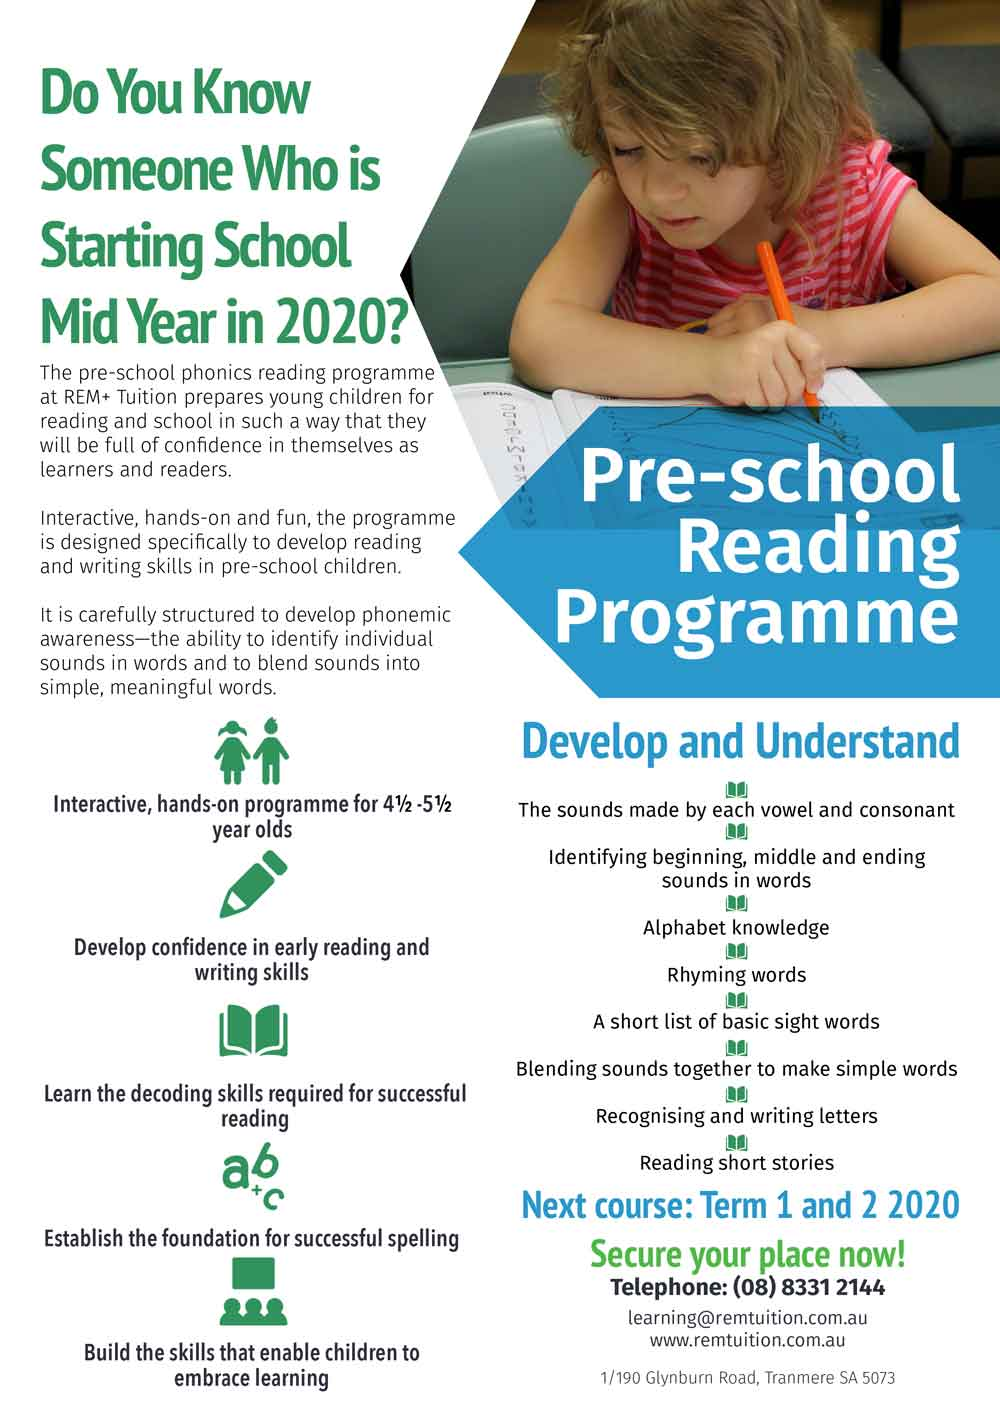 REM-Tuition-A4-Pre-school-Reading-Programme-Email.jpg